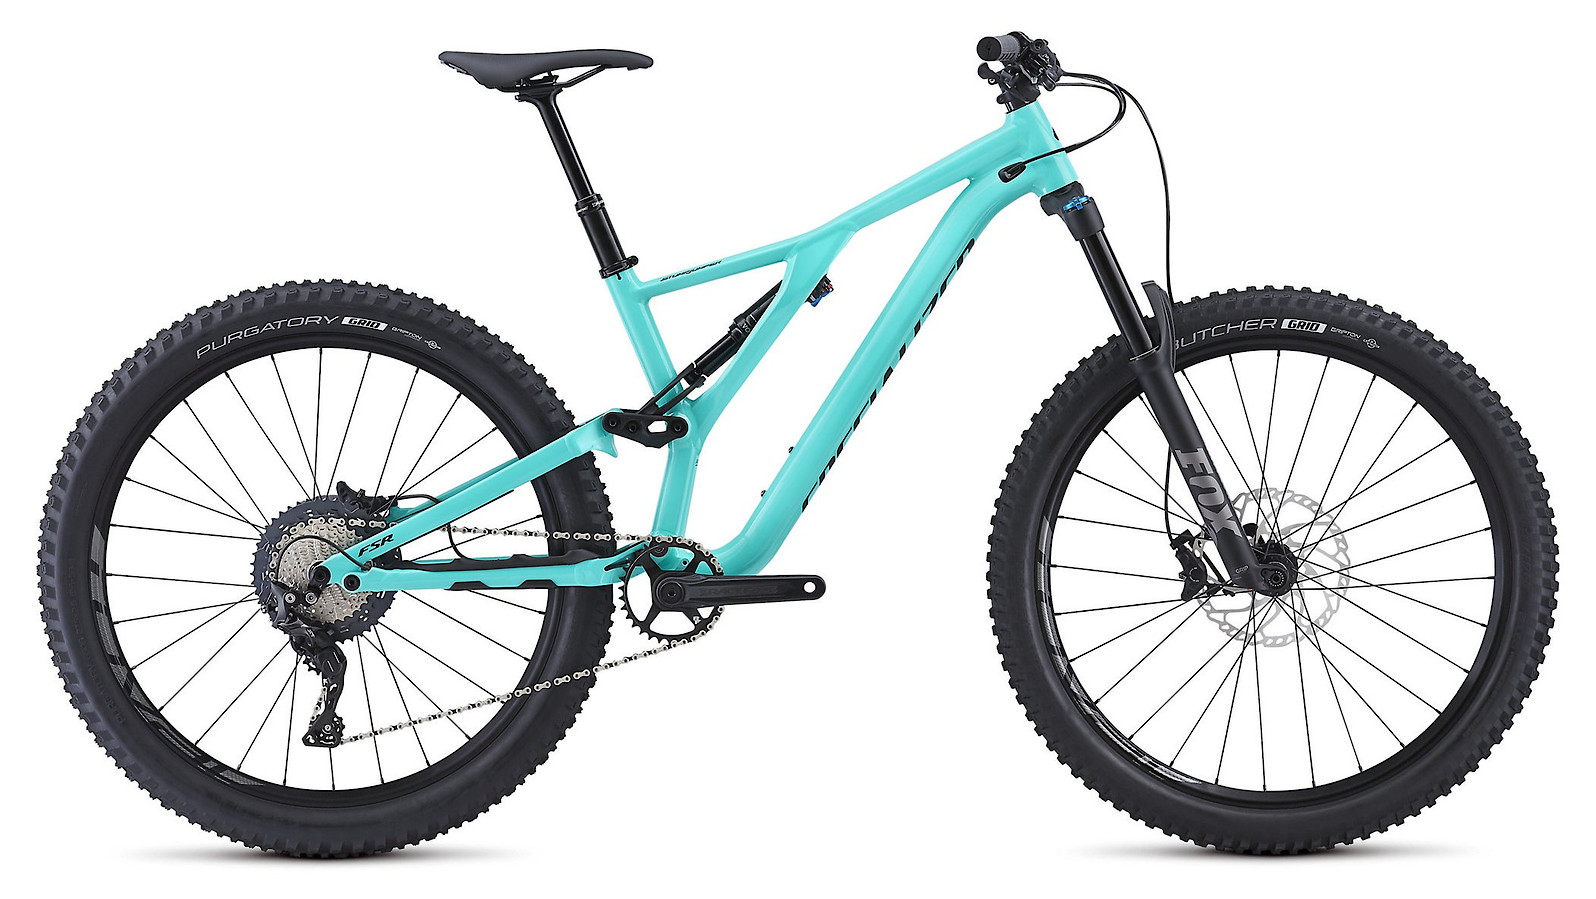 2018 Specialized Stumpjumper Comp Alloy 27 5 Bike - Reviews